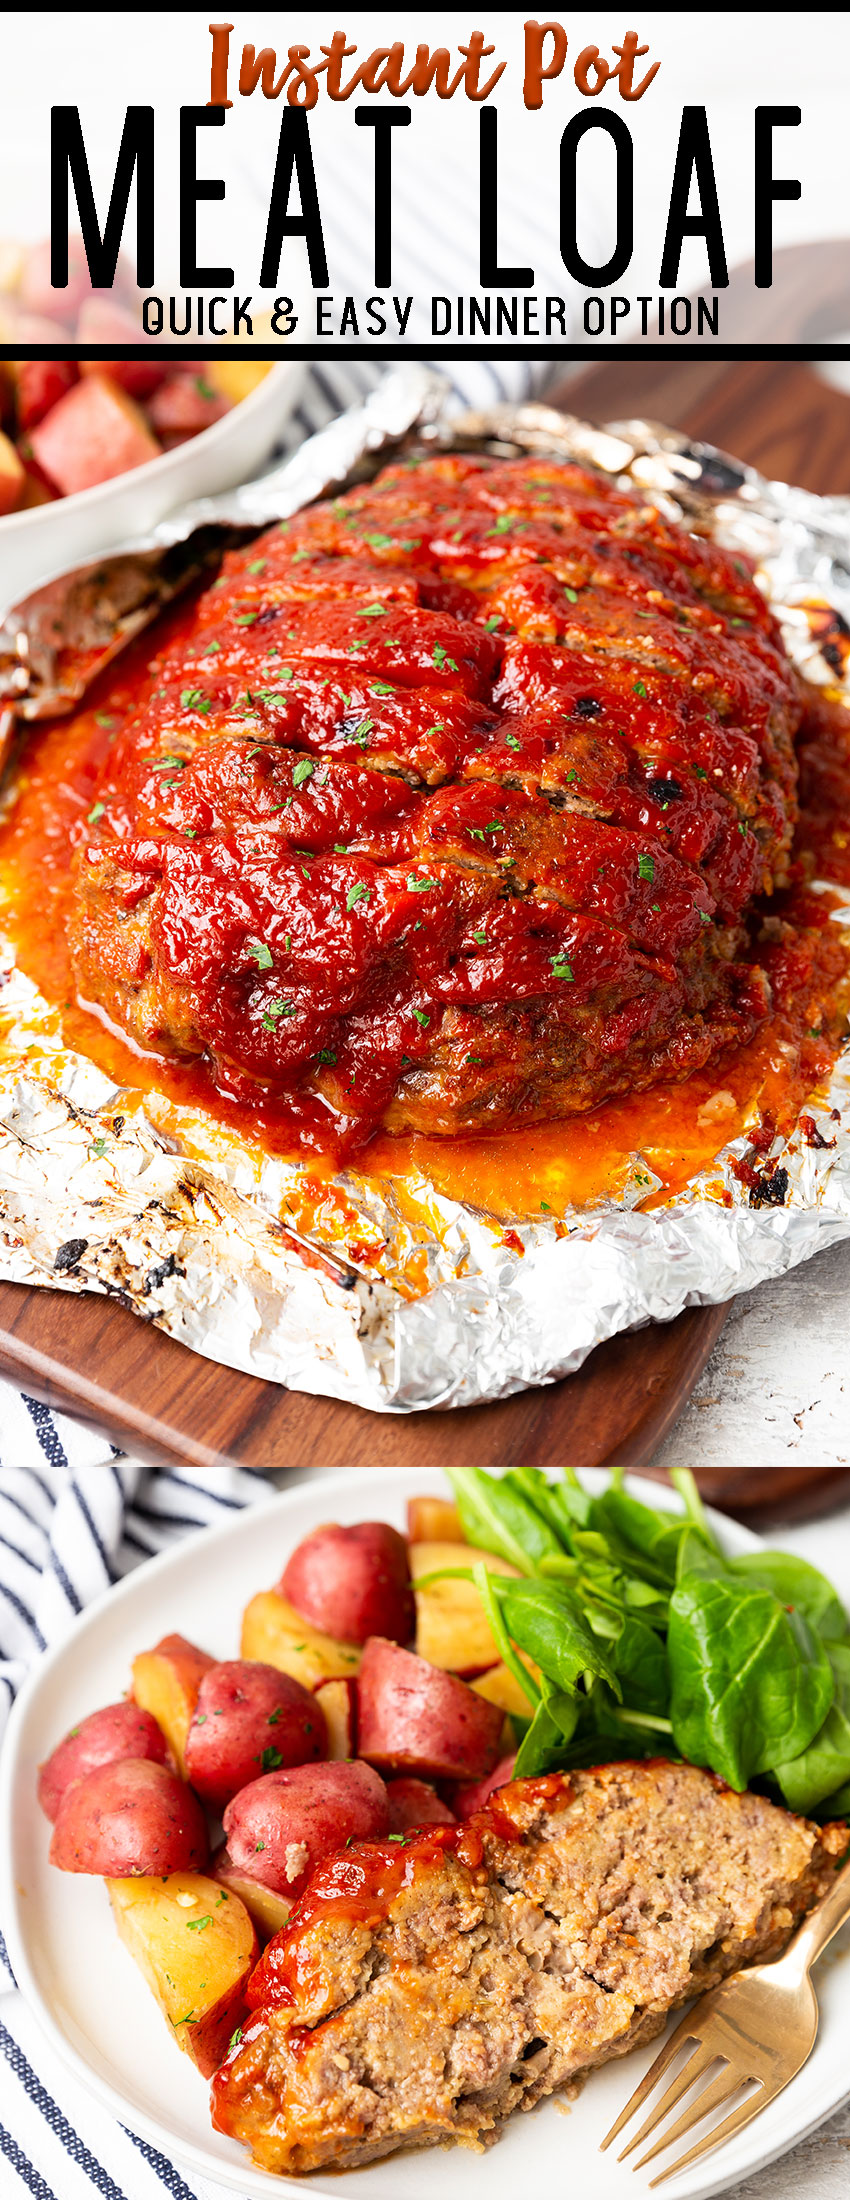 An amazing and easy instant pot meatloaf, made with delicious spices, and parmesan cheese, and topped with an amazing sauce.